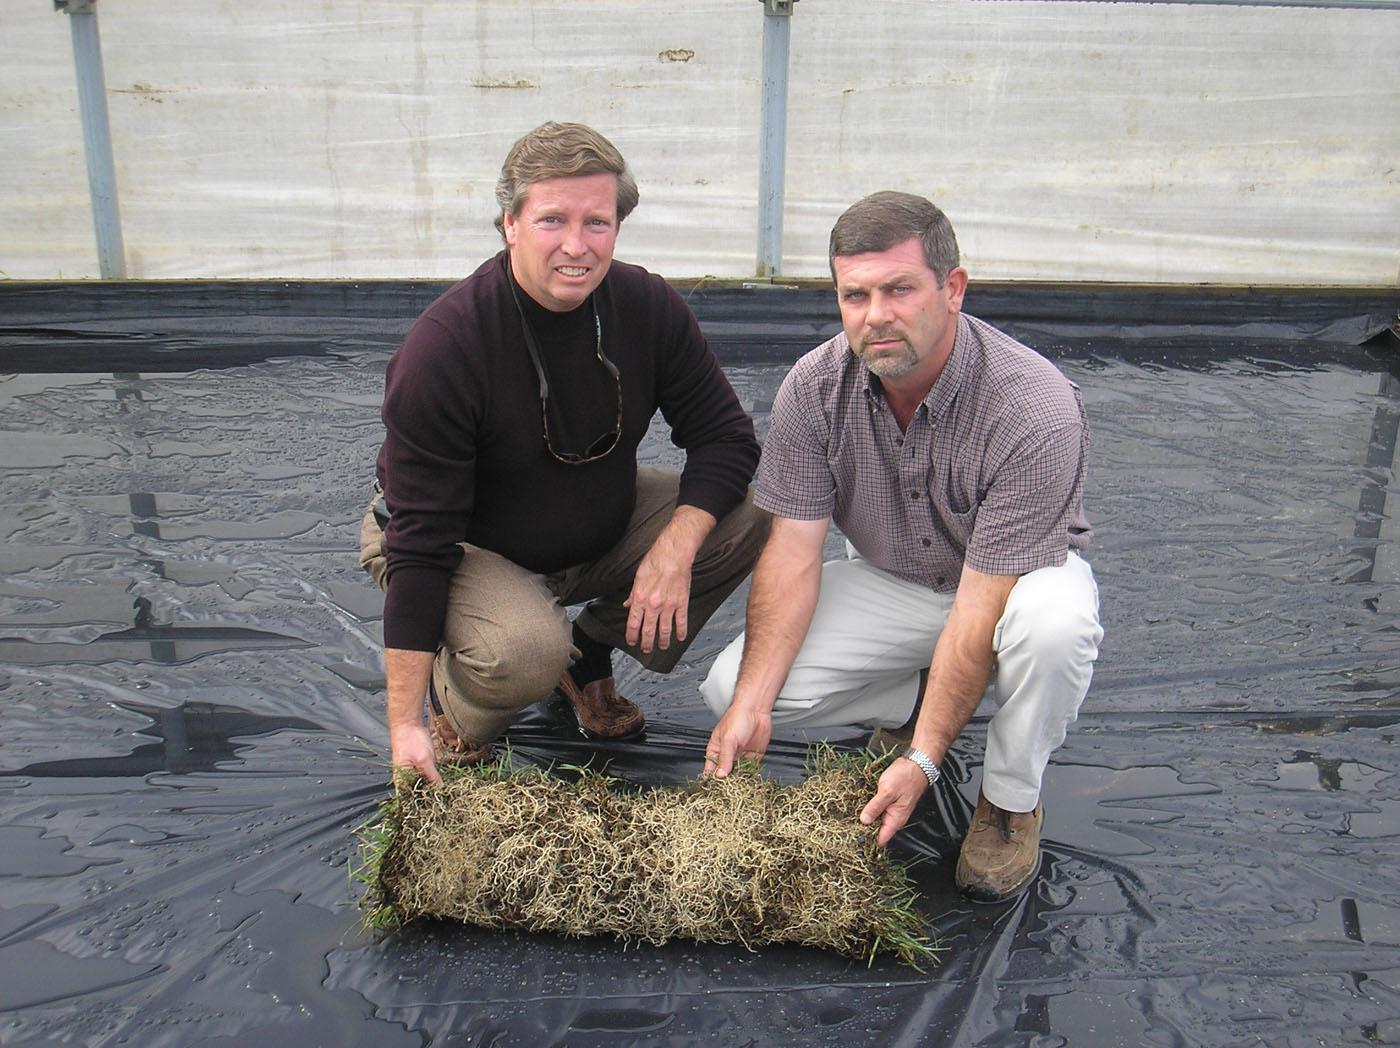 Phillip Jennings Turf Farm in Soperton, Ga., has acquired the rights to commercialize soilless sod produced with technology developed and patented by Mississippi State University. Phillip Jennings, left, the company's president and owner, and Mike Fulghum hold a completed section of soilless sod in a greenhouse ready to receive a new crop.